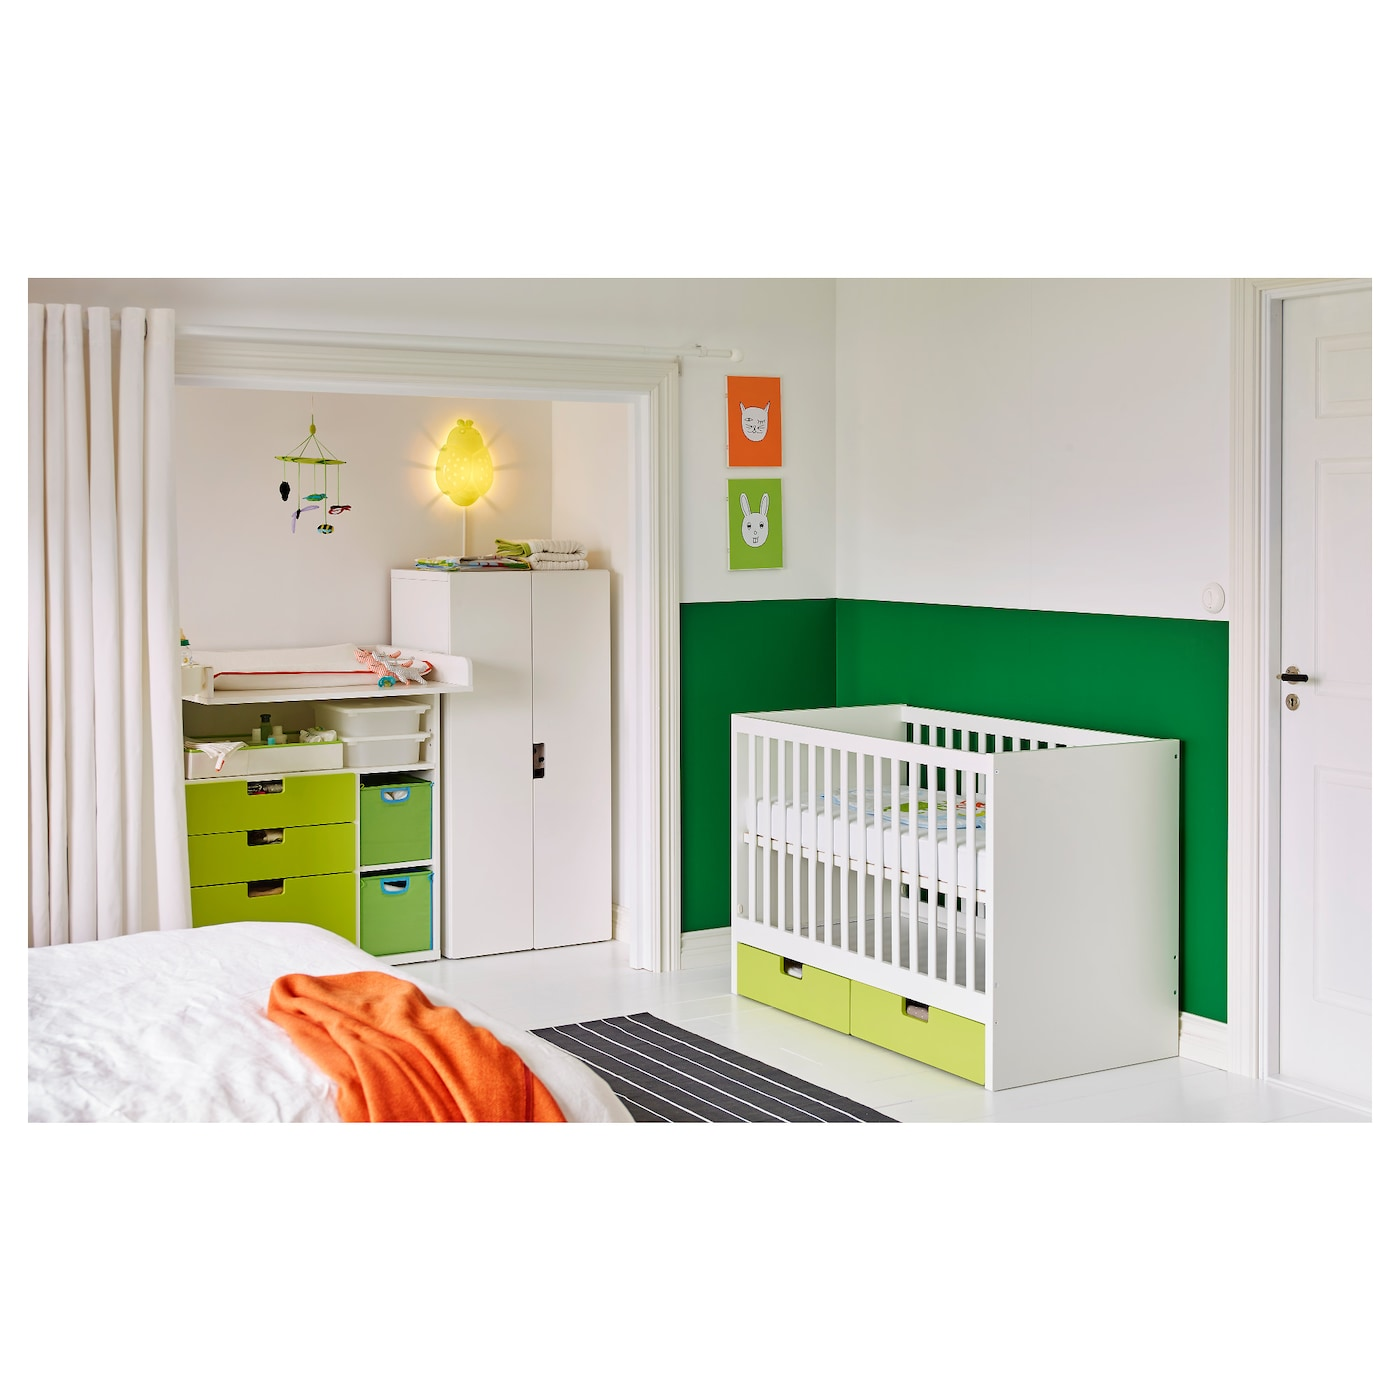 stuva lit enfant tiroirs vert 60x120 cm ikea. Black Bedroom Furniture Sets. Home Design Ideas